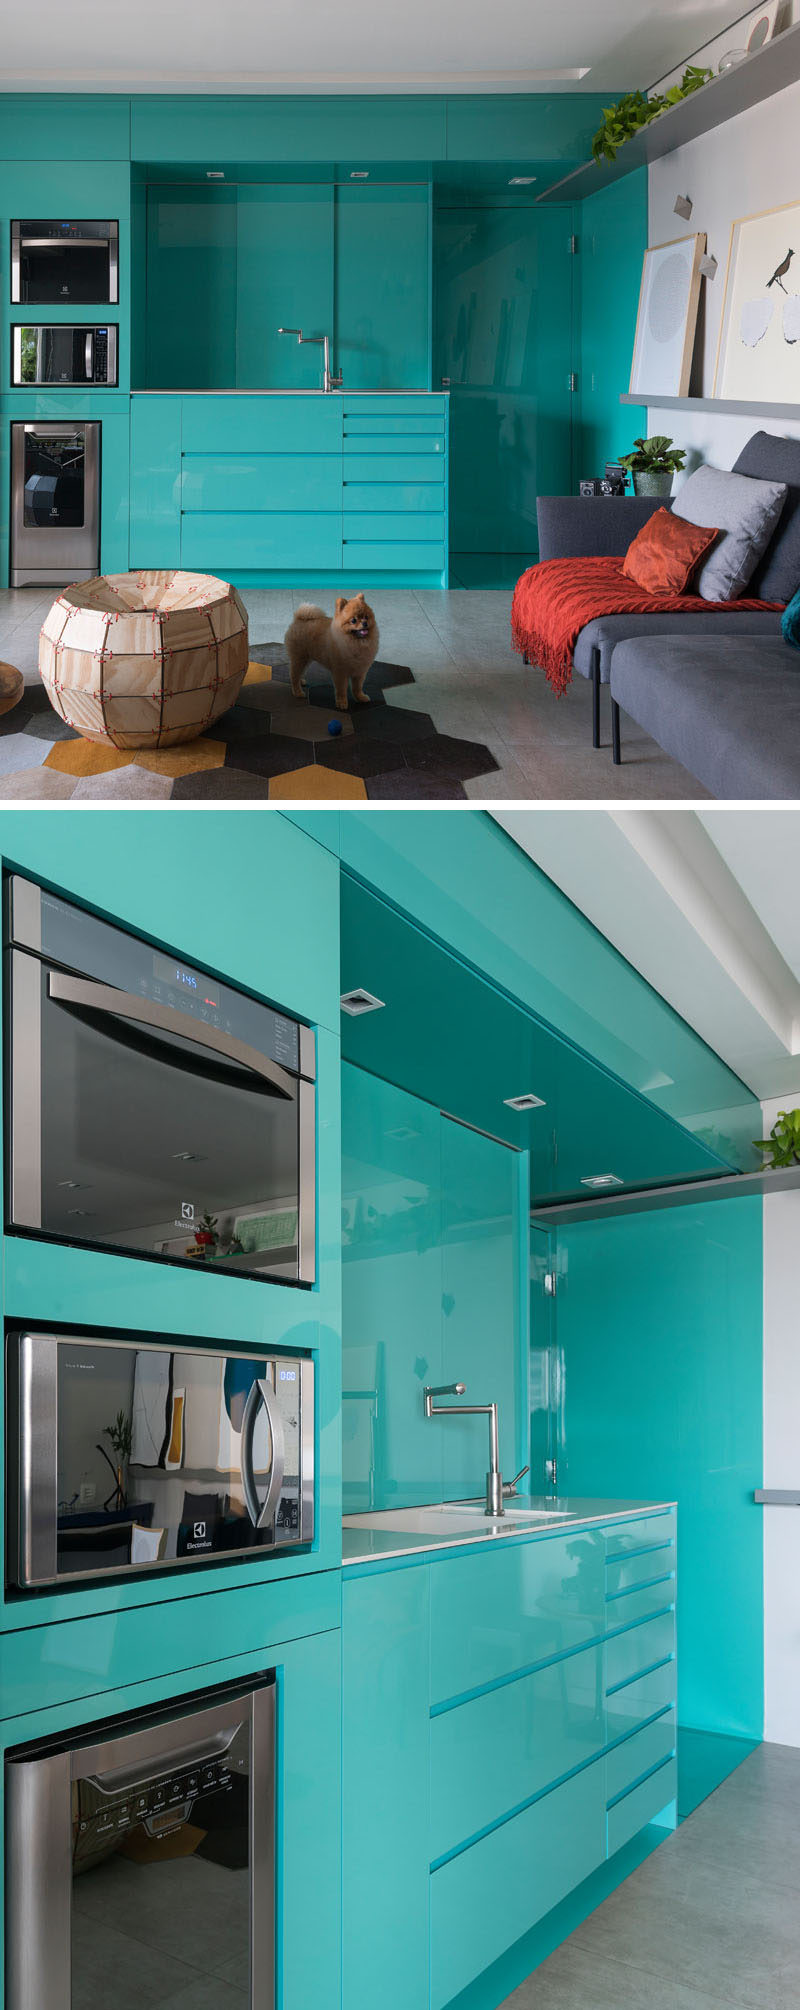 This modern kitchen has a bright blue color scheme with minimalist and glossy cabinets. By using color, the designers of the apartment were able to define the kitchen area from the open floor plan living room. #BlueKitchen #ModernKitchen #KitchenDesign